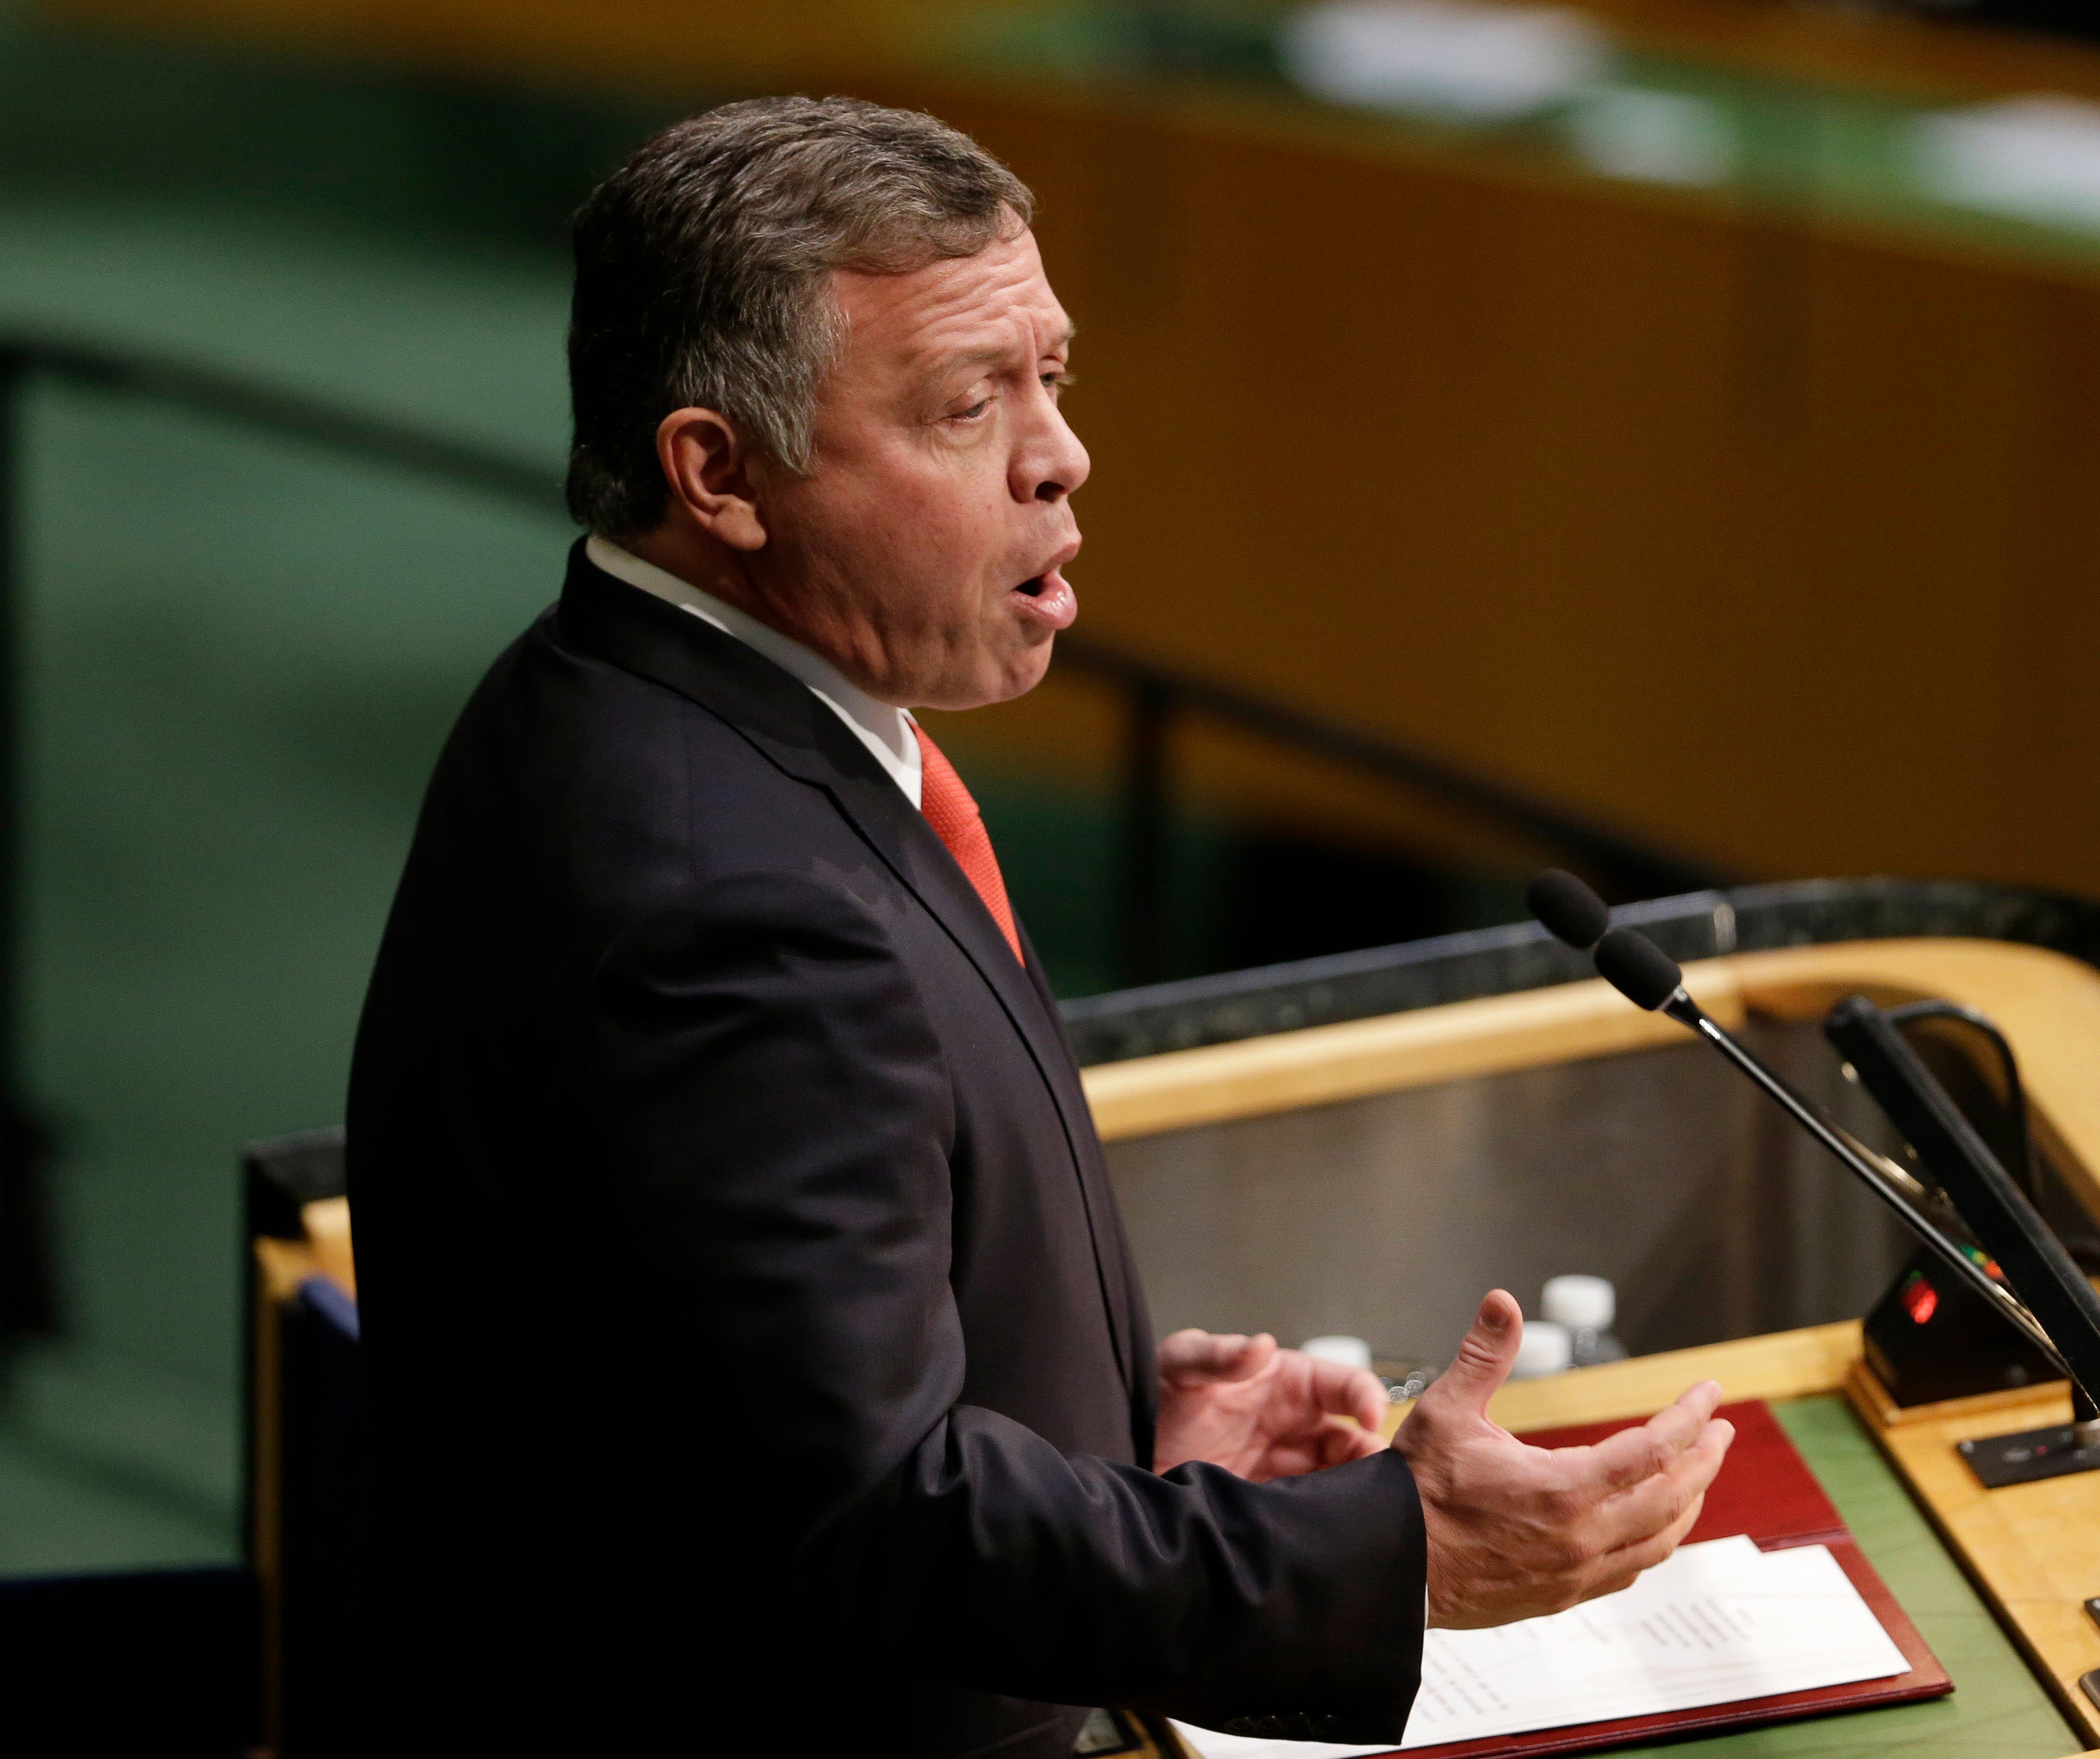 Abdullah II Ibn Al Hussein, King of Jordan, speaks during the 70th session of the United Nations General Assembly at U.N. headquarters, Monday, Sept. 28, 2015.  (AP)